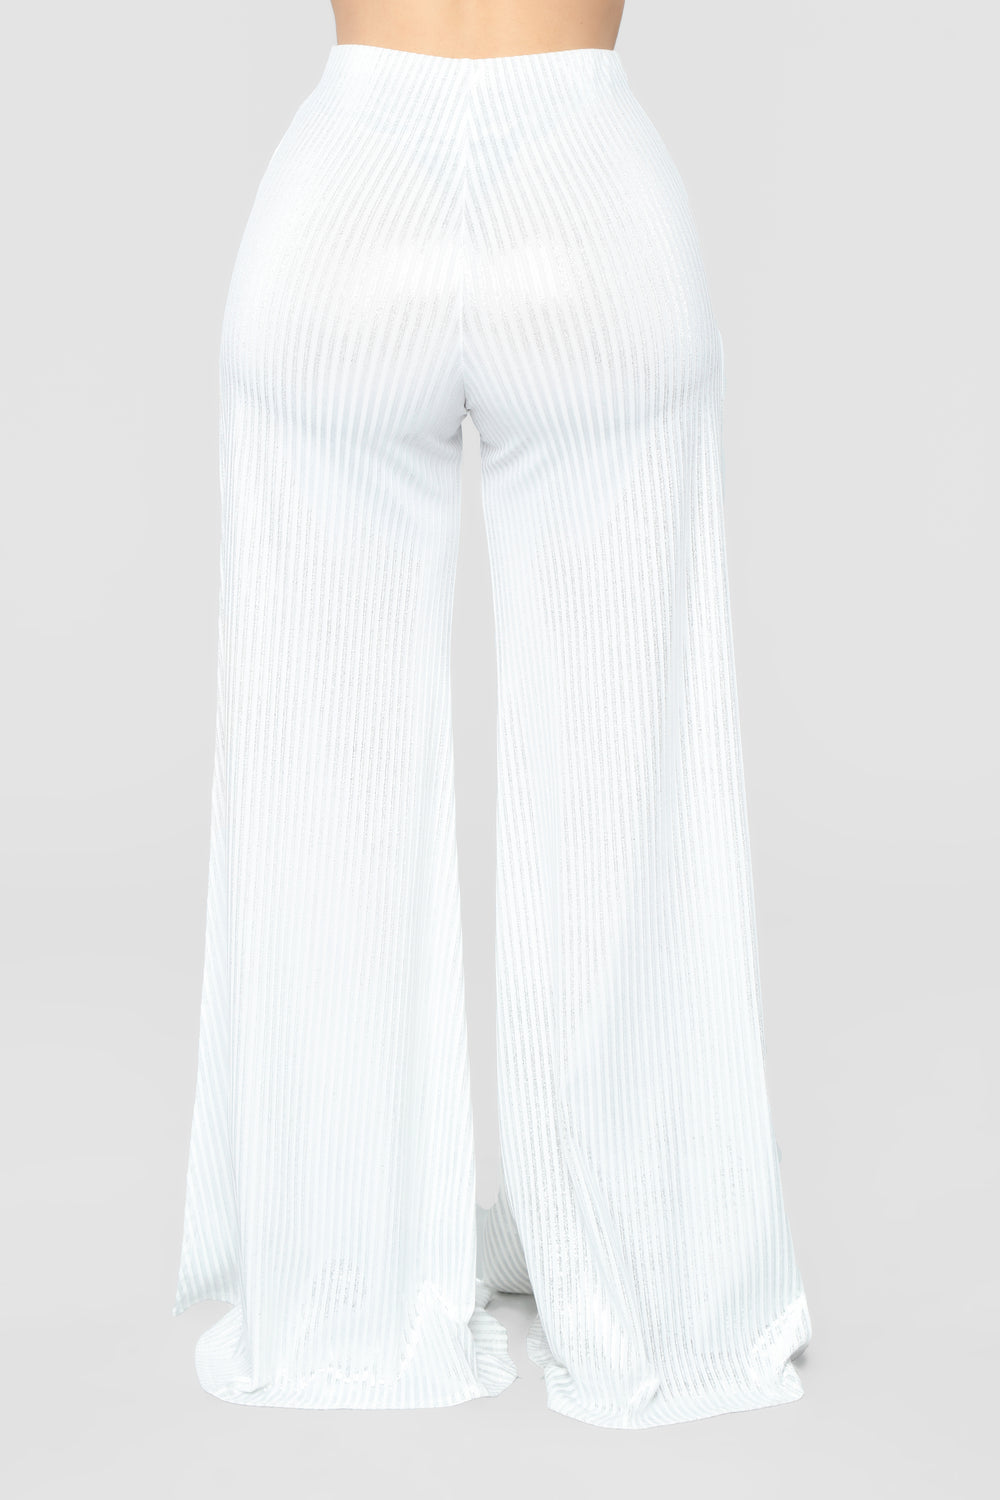 Someone Loves Me Pant Set - Ivory